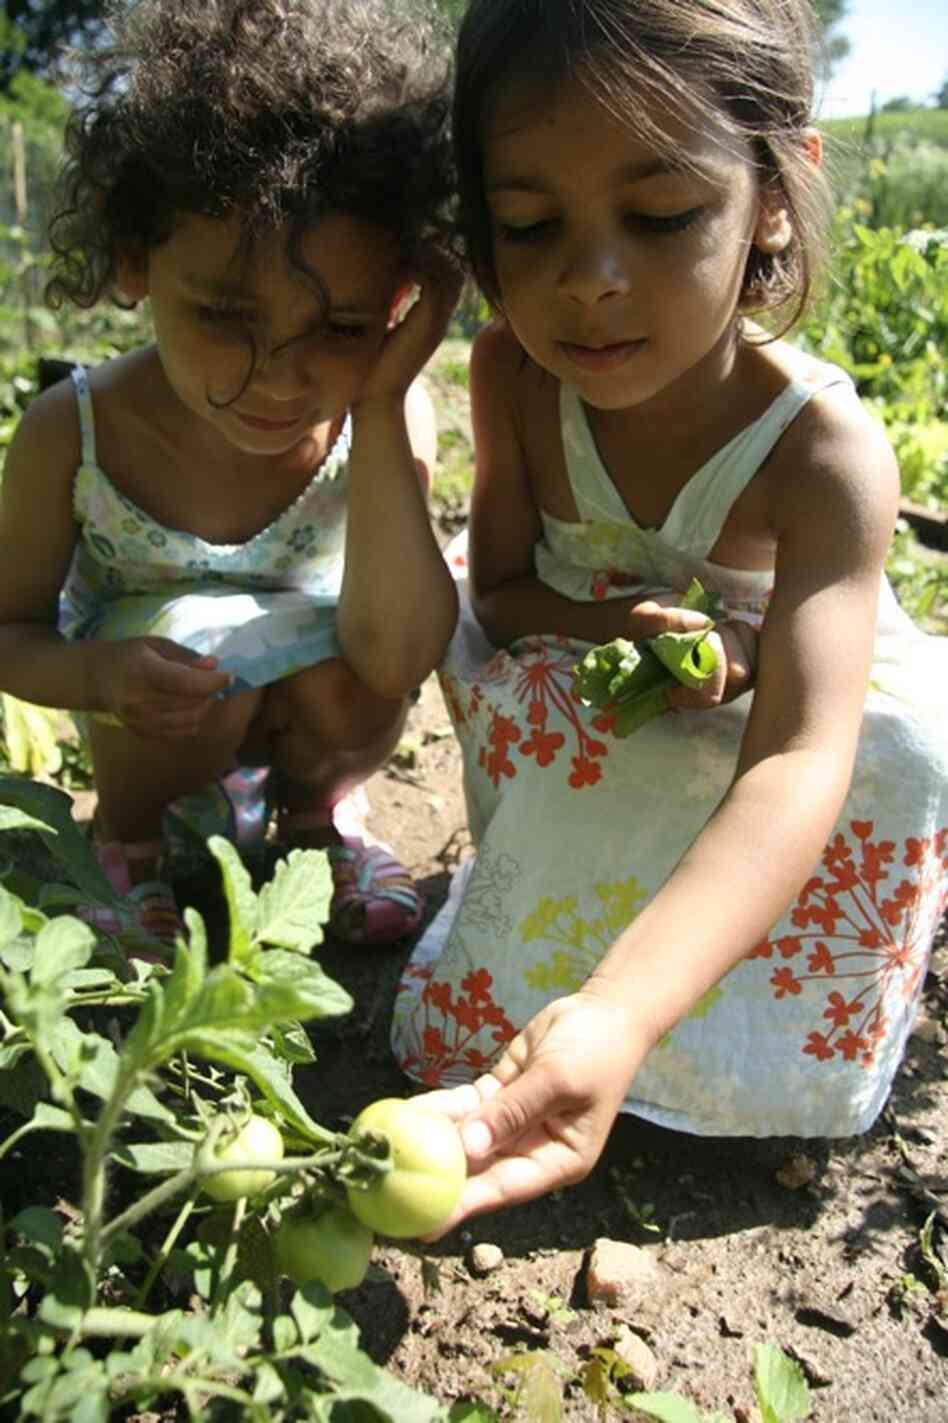 In the children's book We Grew It, Let's Eat It, as told by the twins to Kenin, the girls learn about urban gardening.